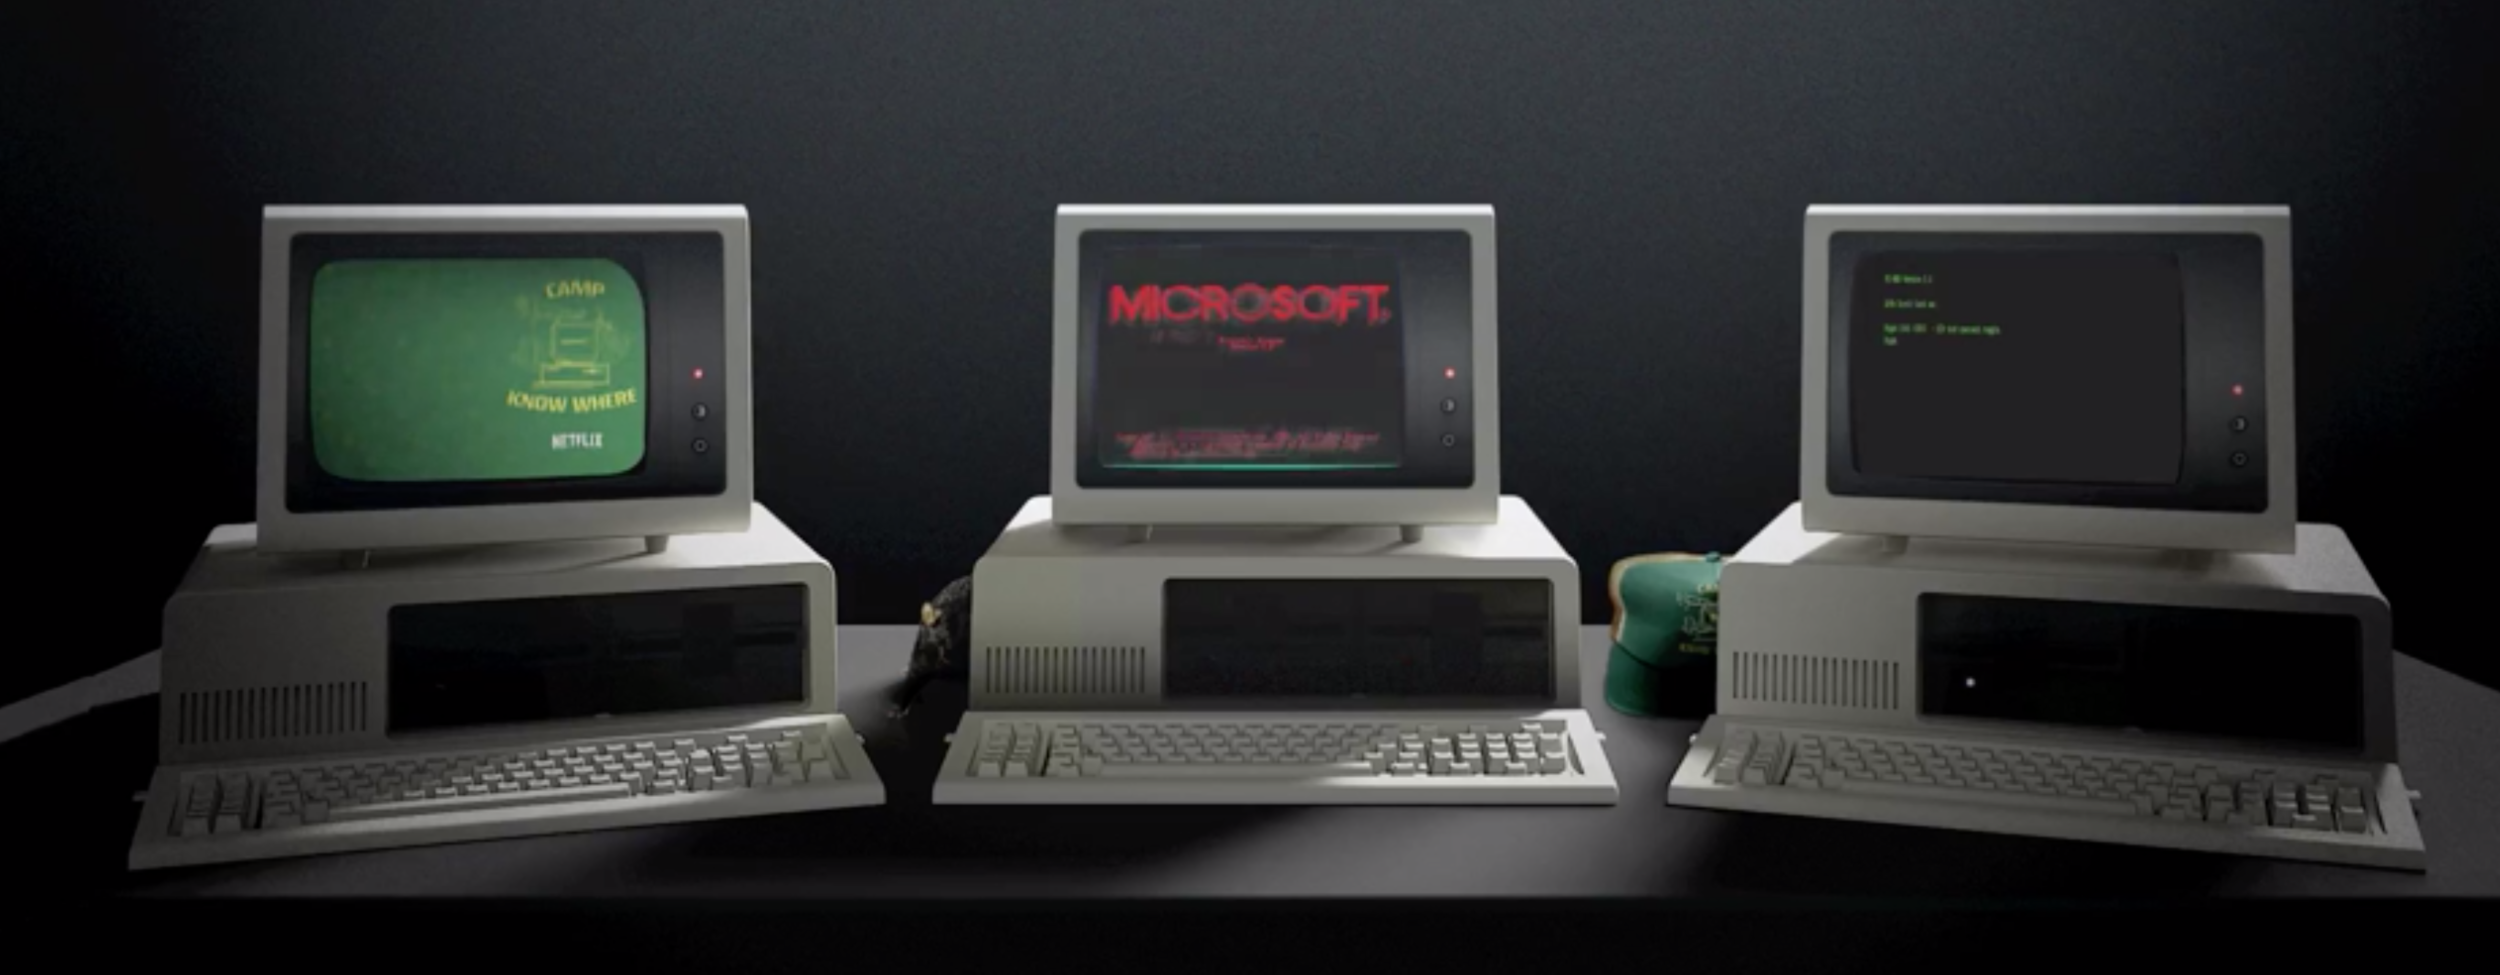 1. Microsoft. Blessed be the geeks, for they will inherit the earth. Or save it. Check out these 1985 throwback apps. And then take another look at Dustin's cap…  https://www.microsoft.com/en-us/windows/strangerthings3?